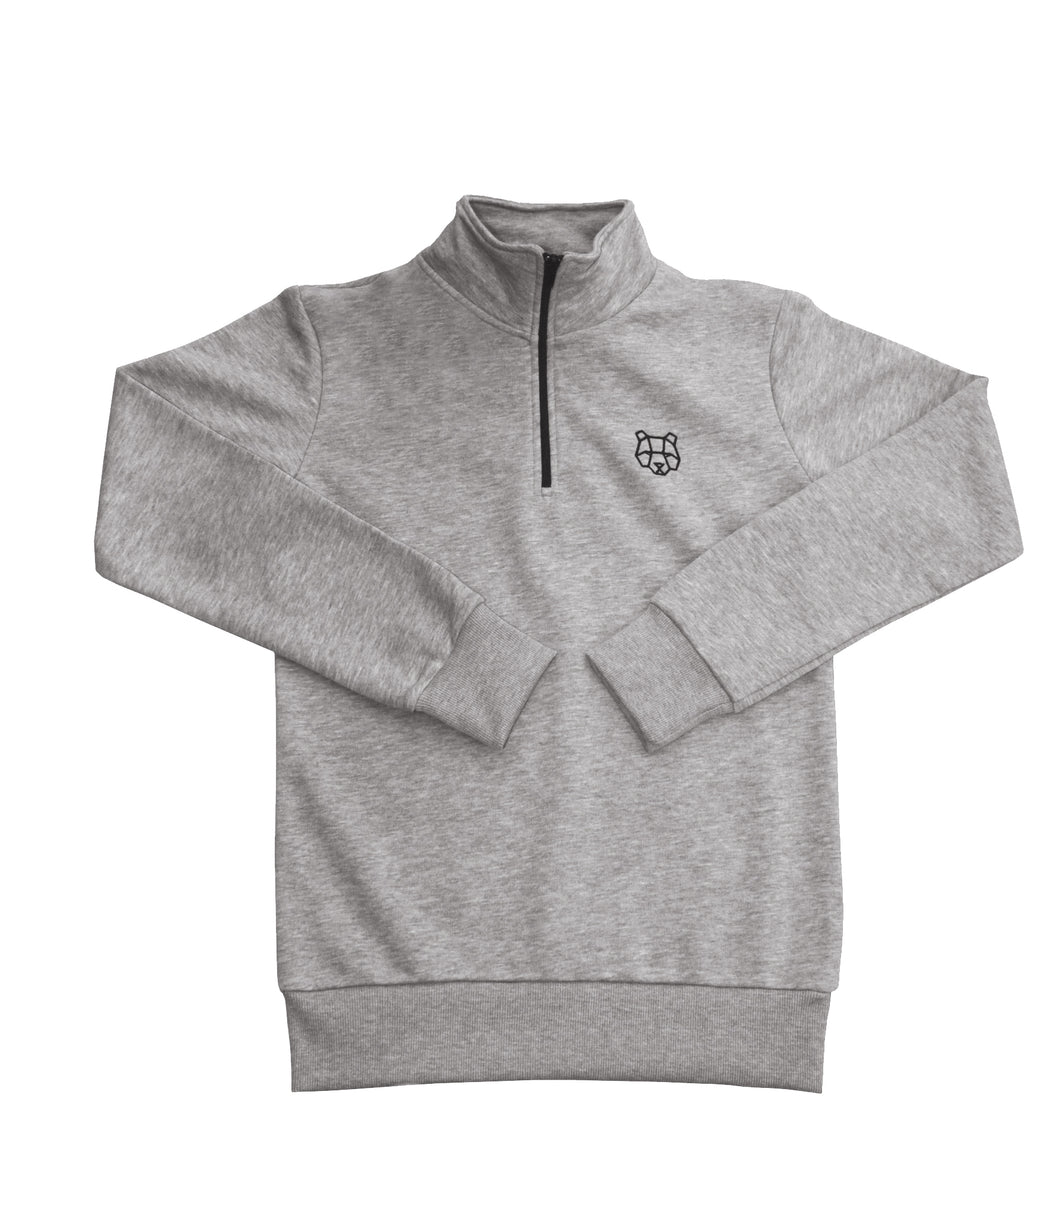 Cultured Collection 1/4 Zip Sweatshirt in Grey